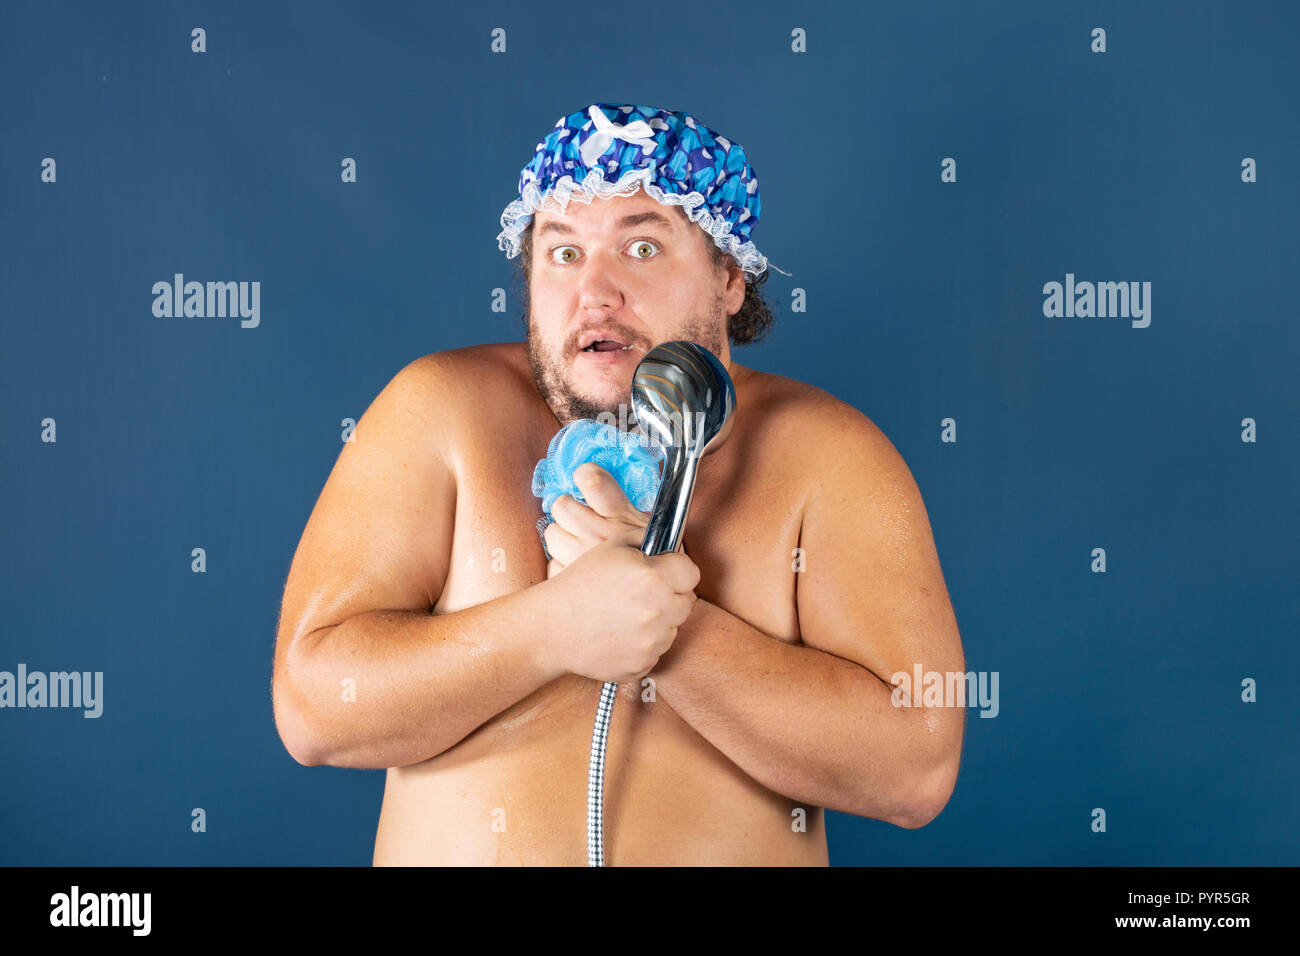 Funny fat man in blue cap sing in the shower. Fun and cleanliness - Stock Image